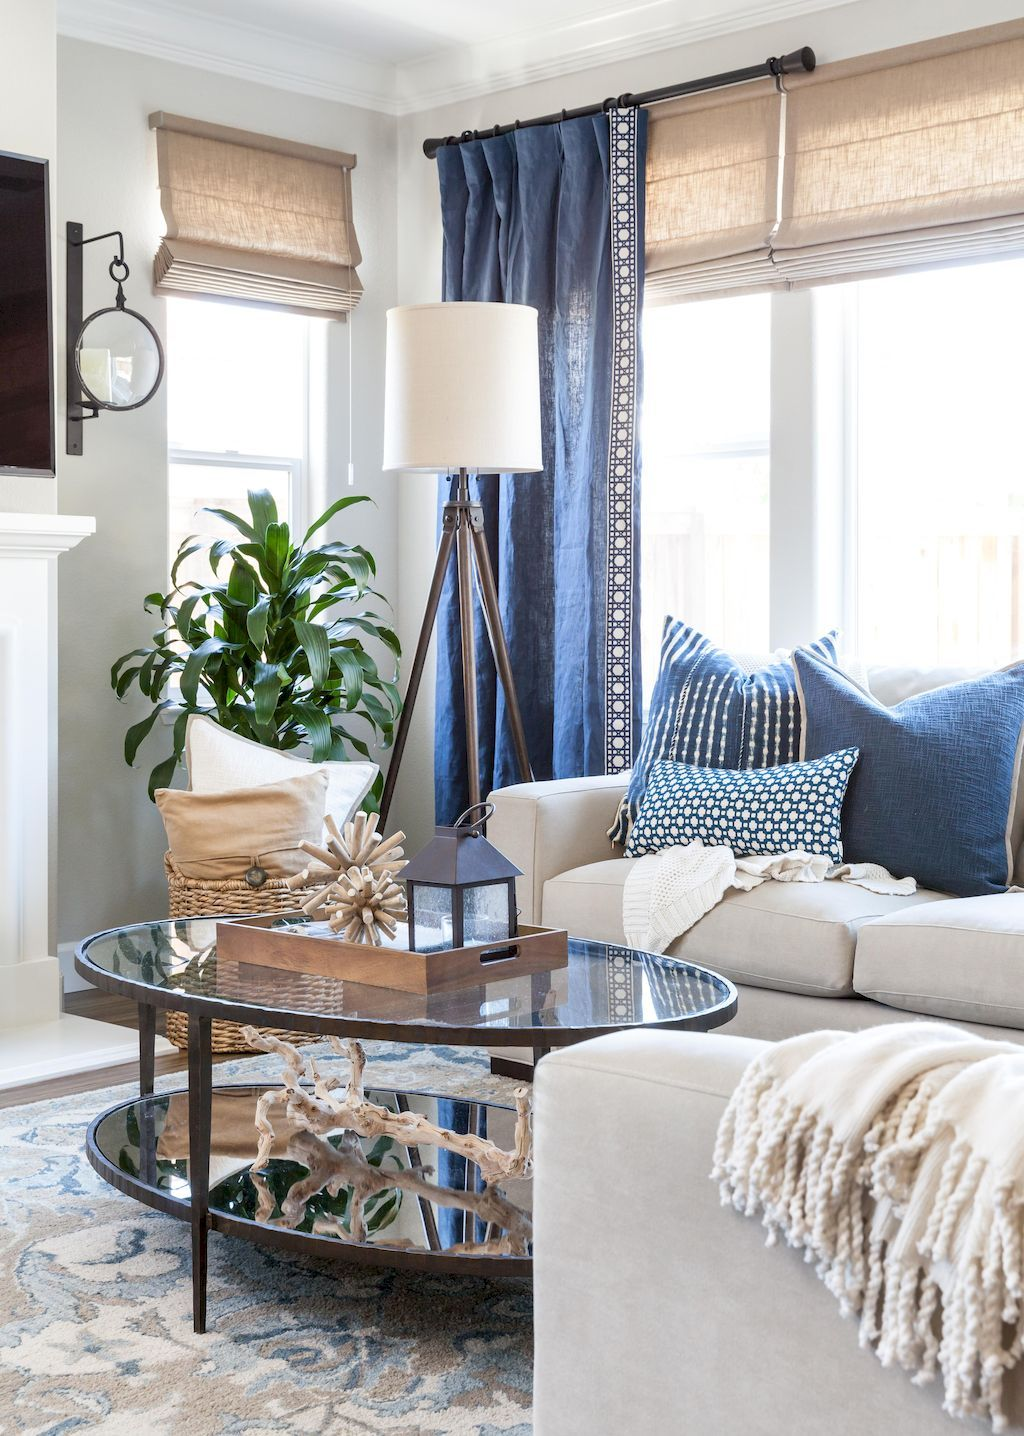 70 Cool and Clean Coastal Living Room Decorating Ideas | Pinterest ...